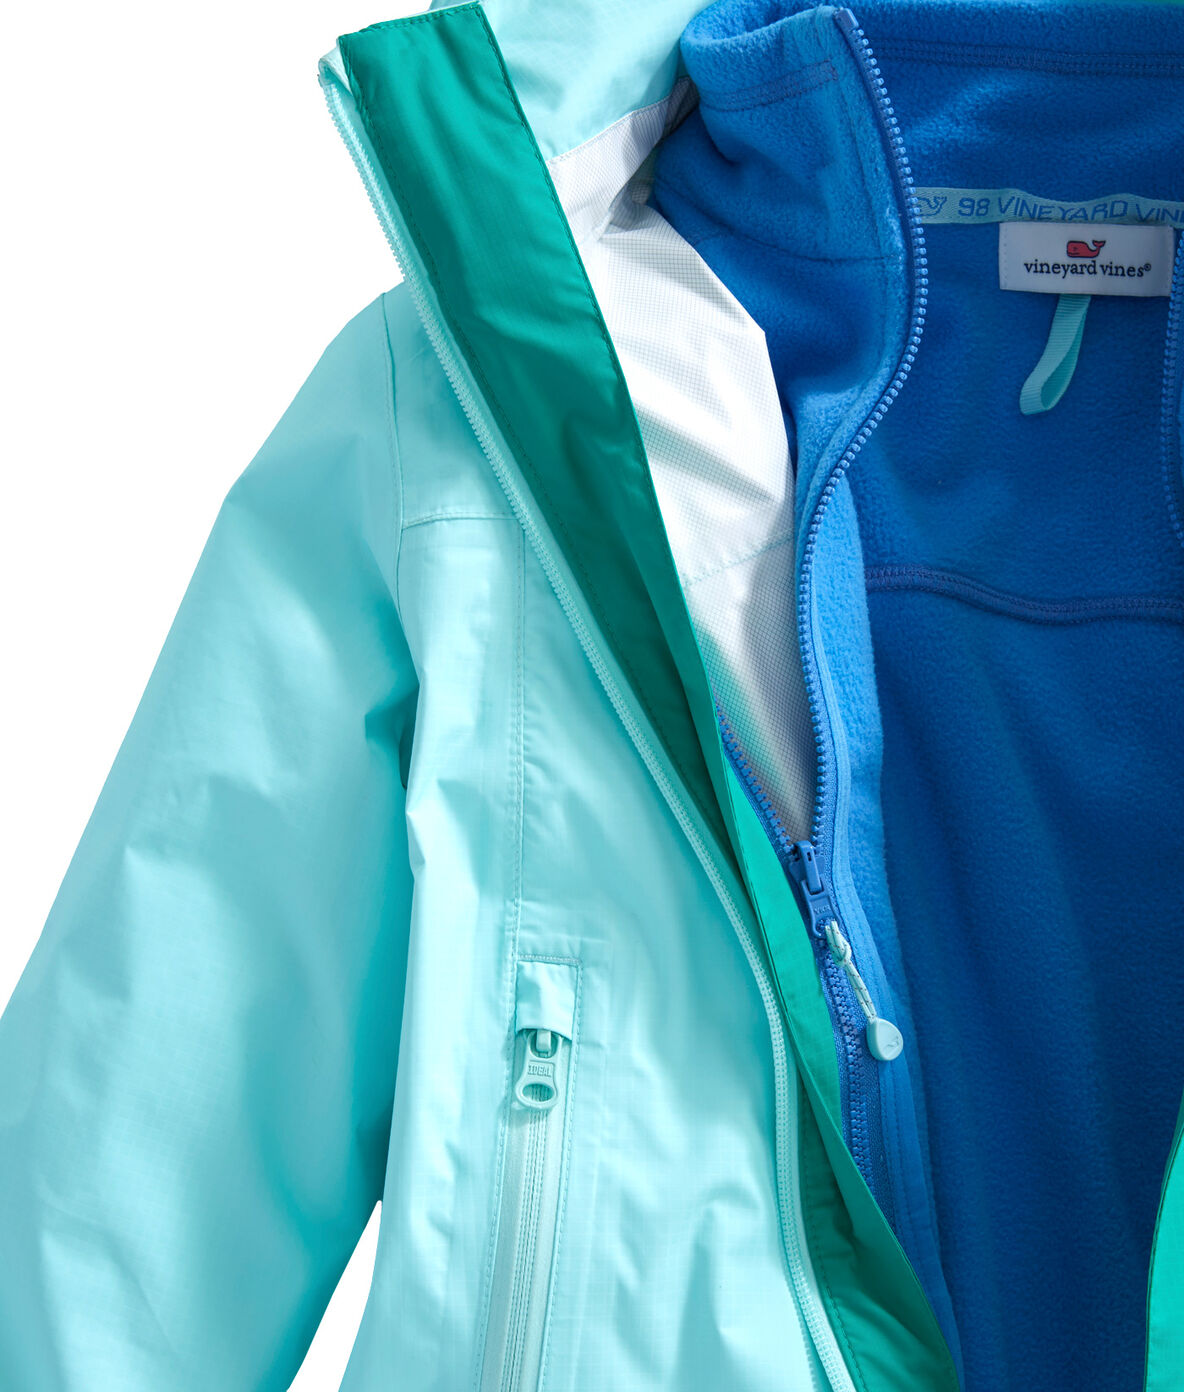 Shop 3 In 1 Raincoat At Vineyard Vines